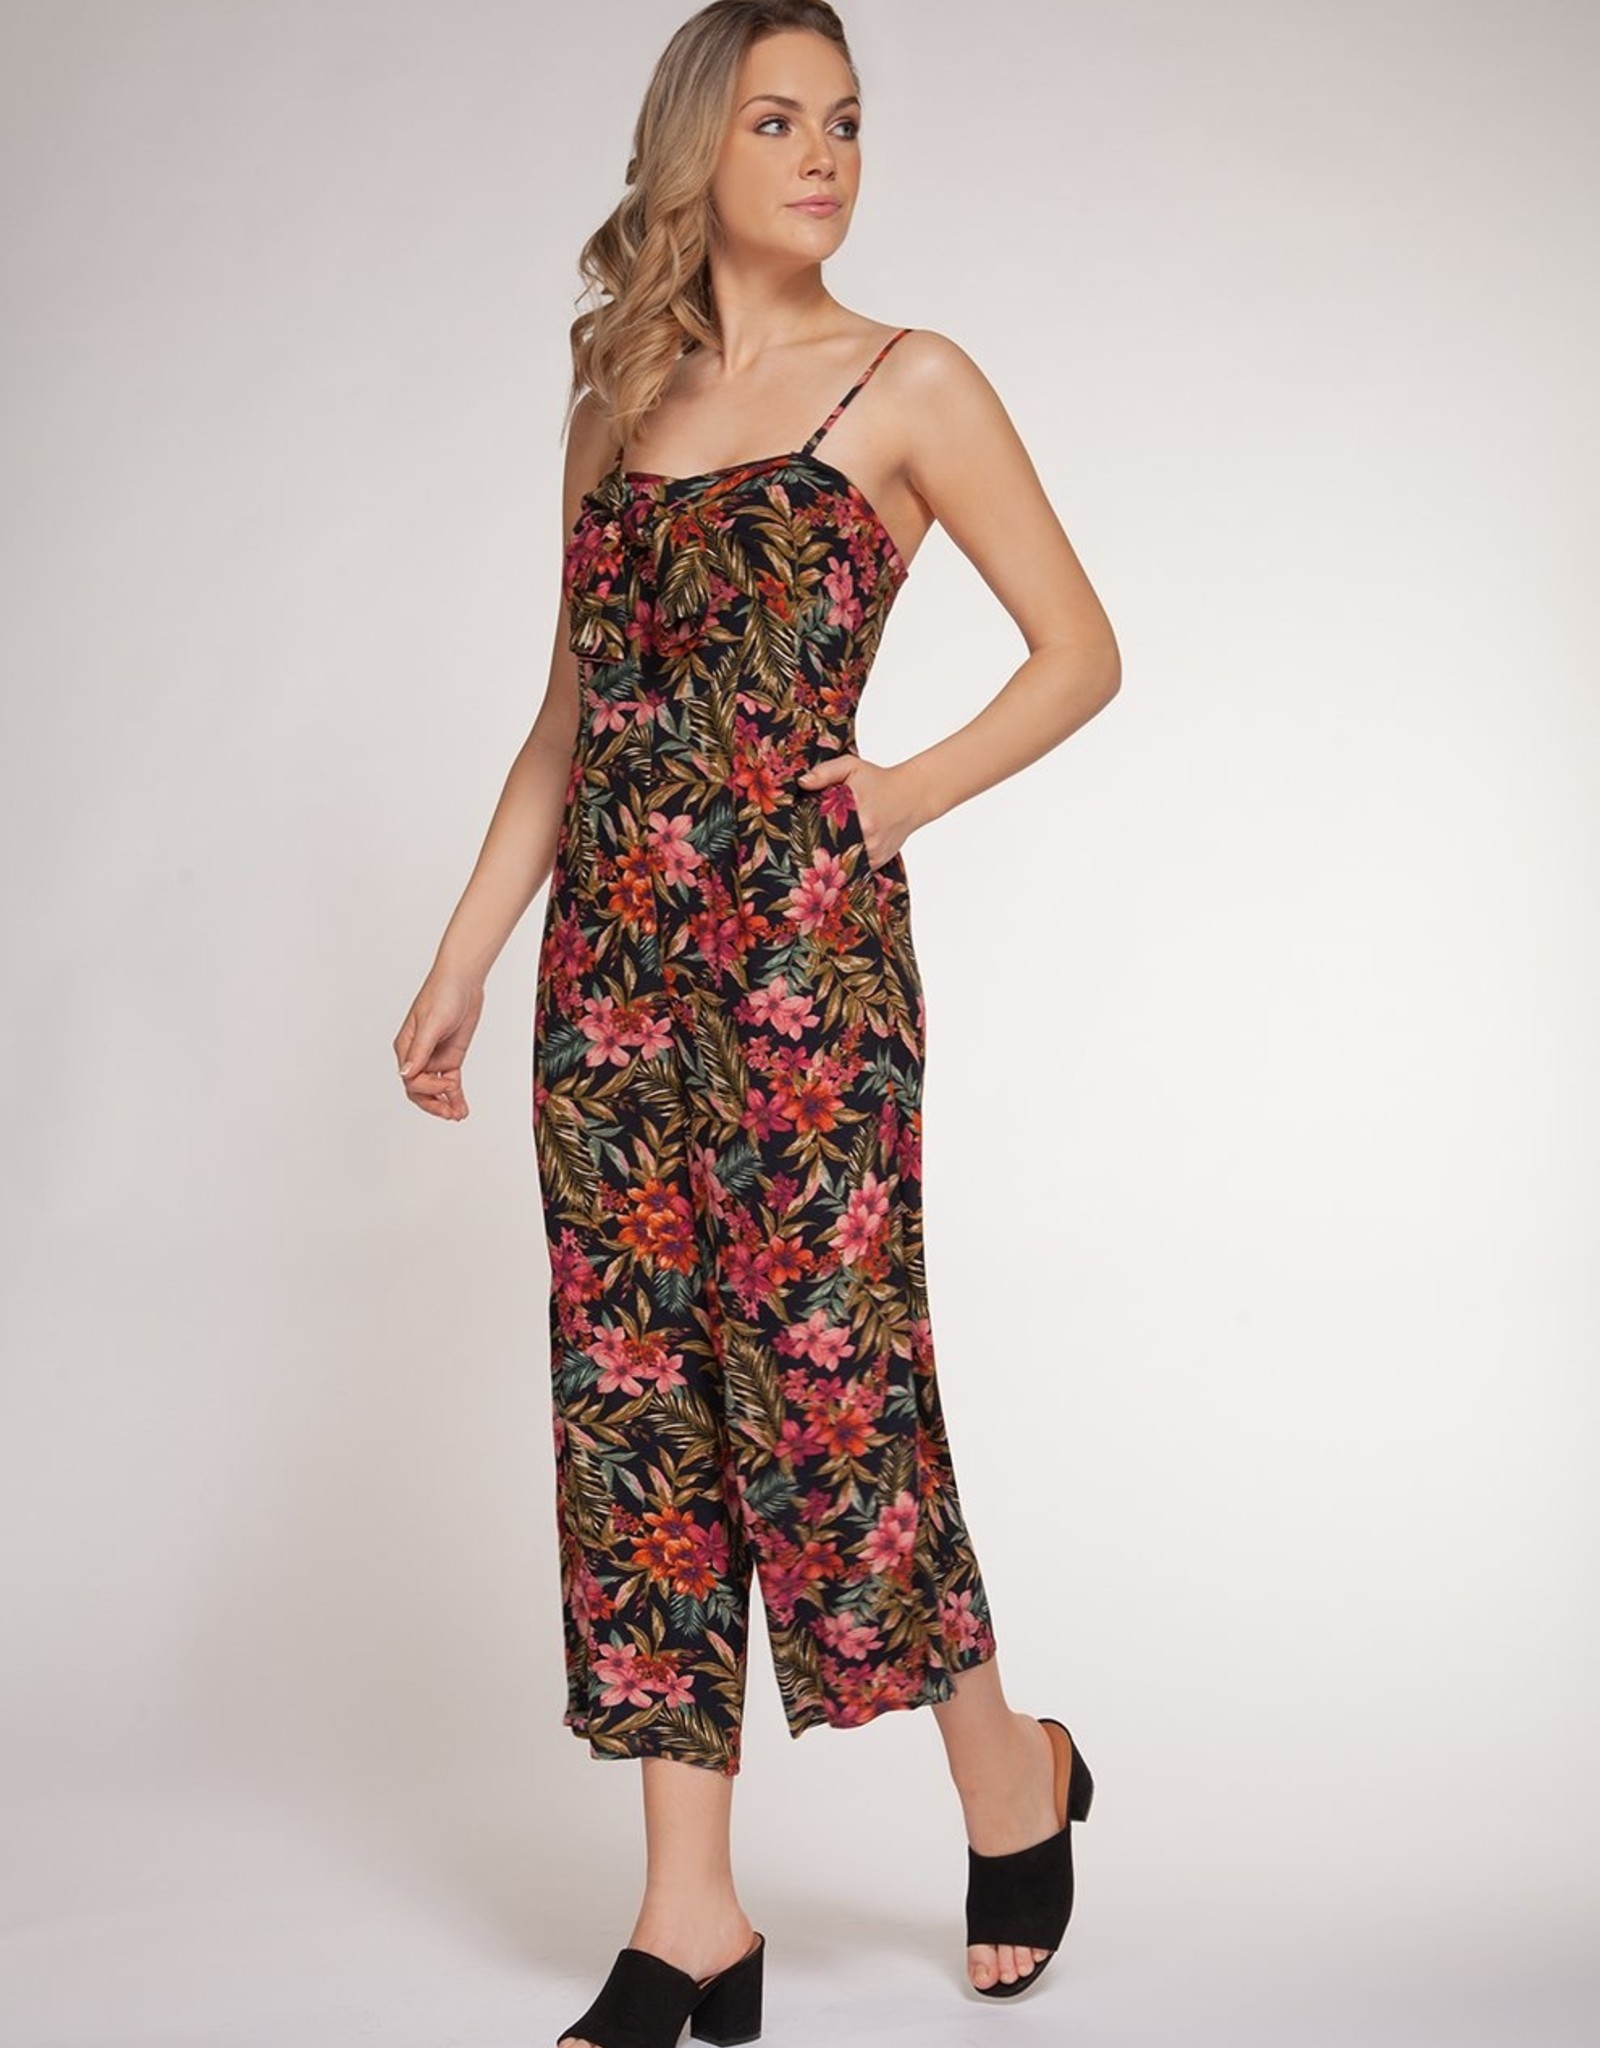 Dex Bros Clothing Co Ltd. Floral Tie Front Jumpsuit